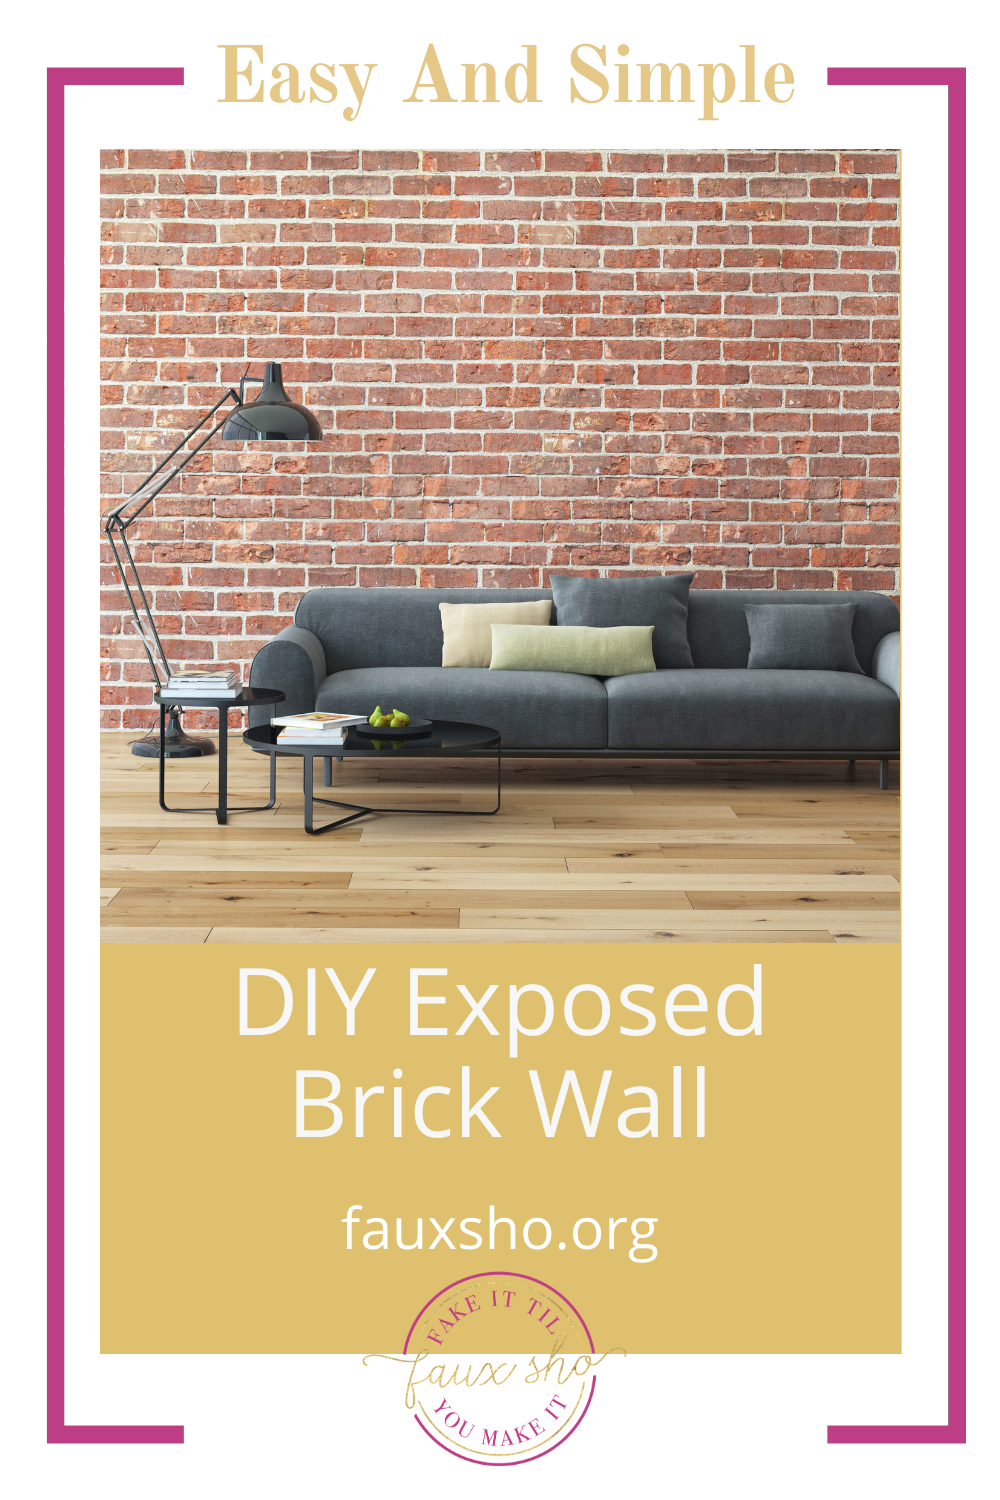 Fauxsho.org is all about faking it 'til you make it! Who doesn't love the industrial look of an exposed brick wall? If you aren't bless with exposed brick in your home, try this method for making a DIY brick wall now!